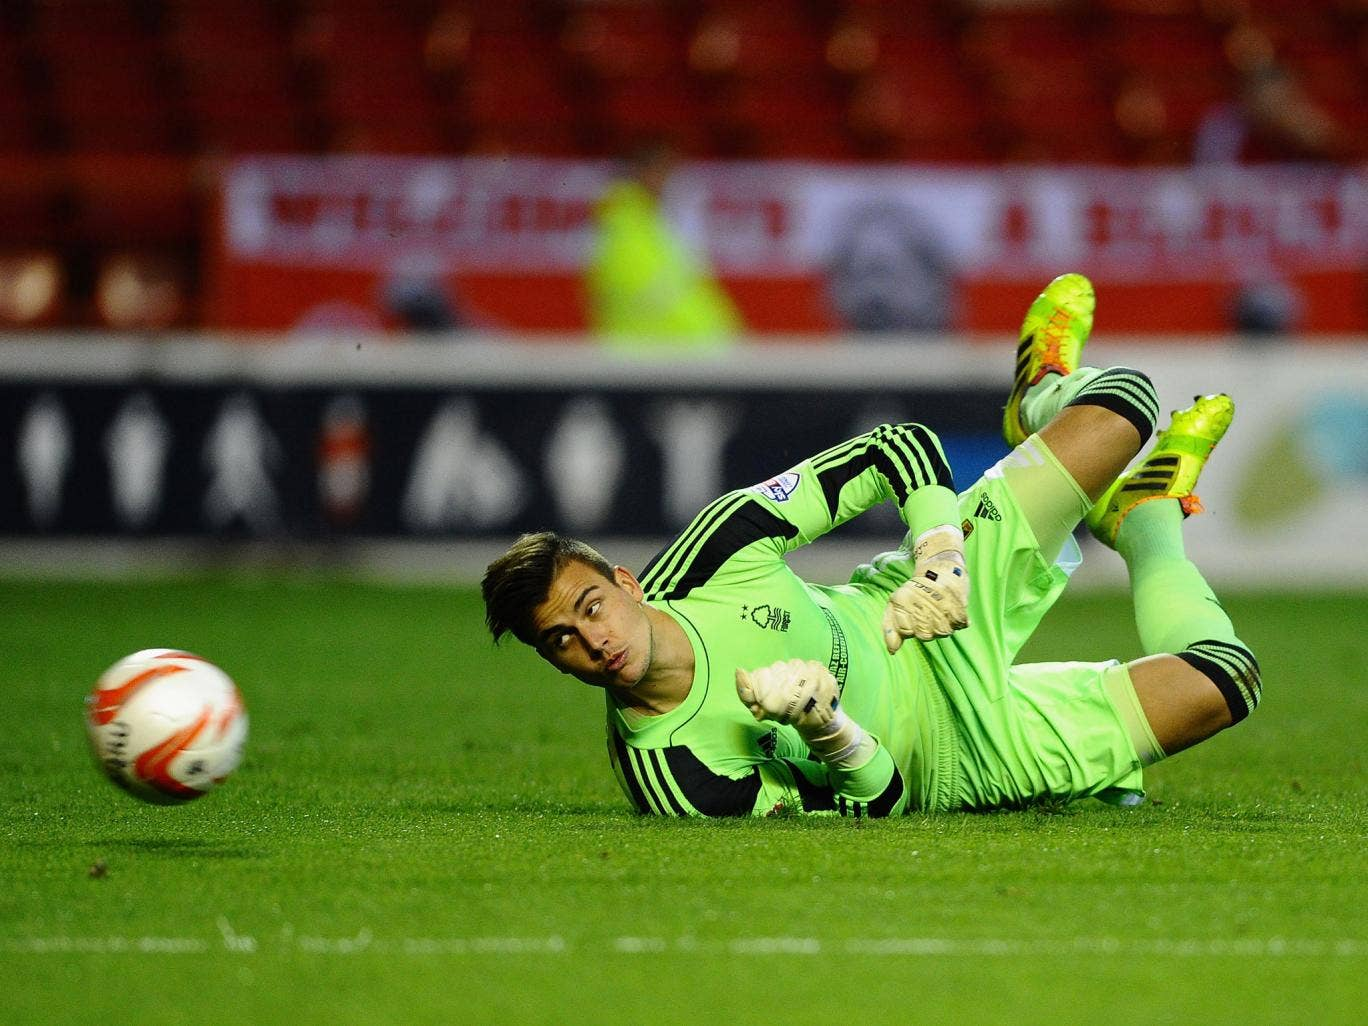 Karl Darlow of Nottingham Forest dives to make a save during the Sky Bet Championship match between Nottingham Forest and Sheffield Wednesday